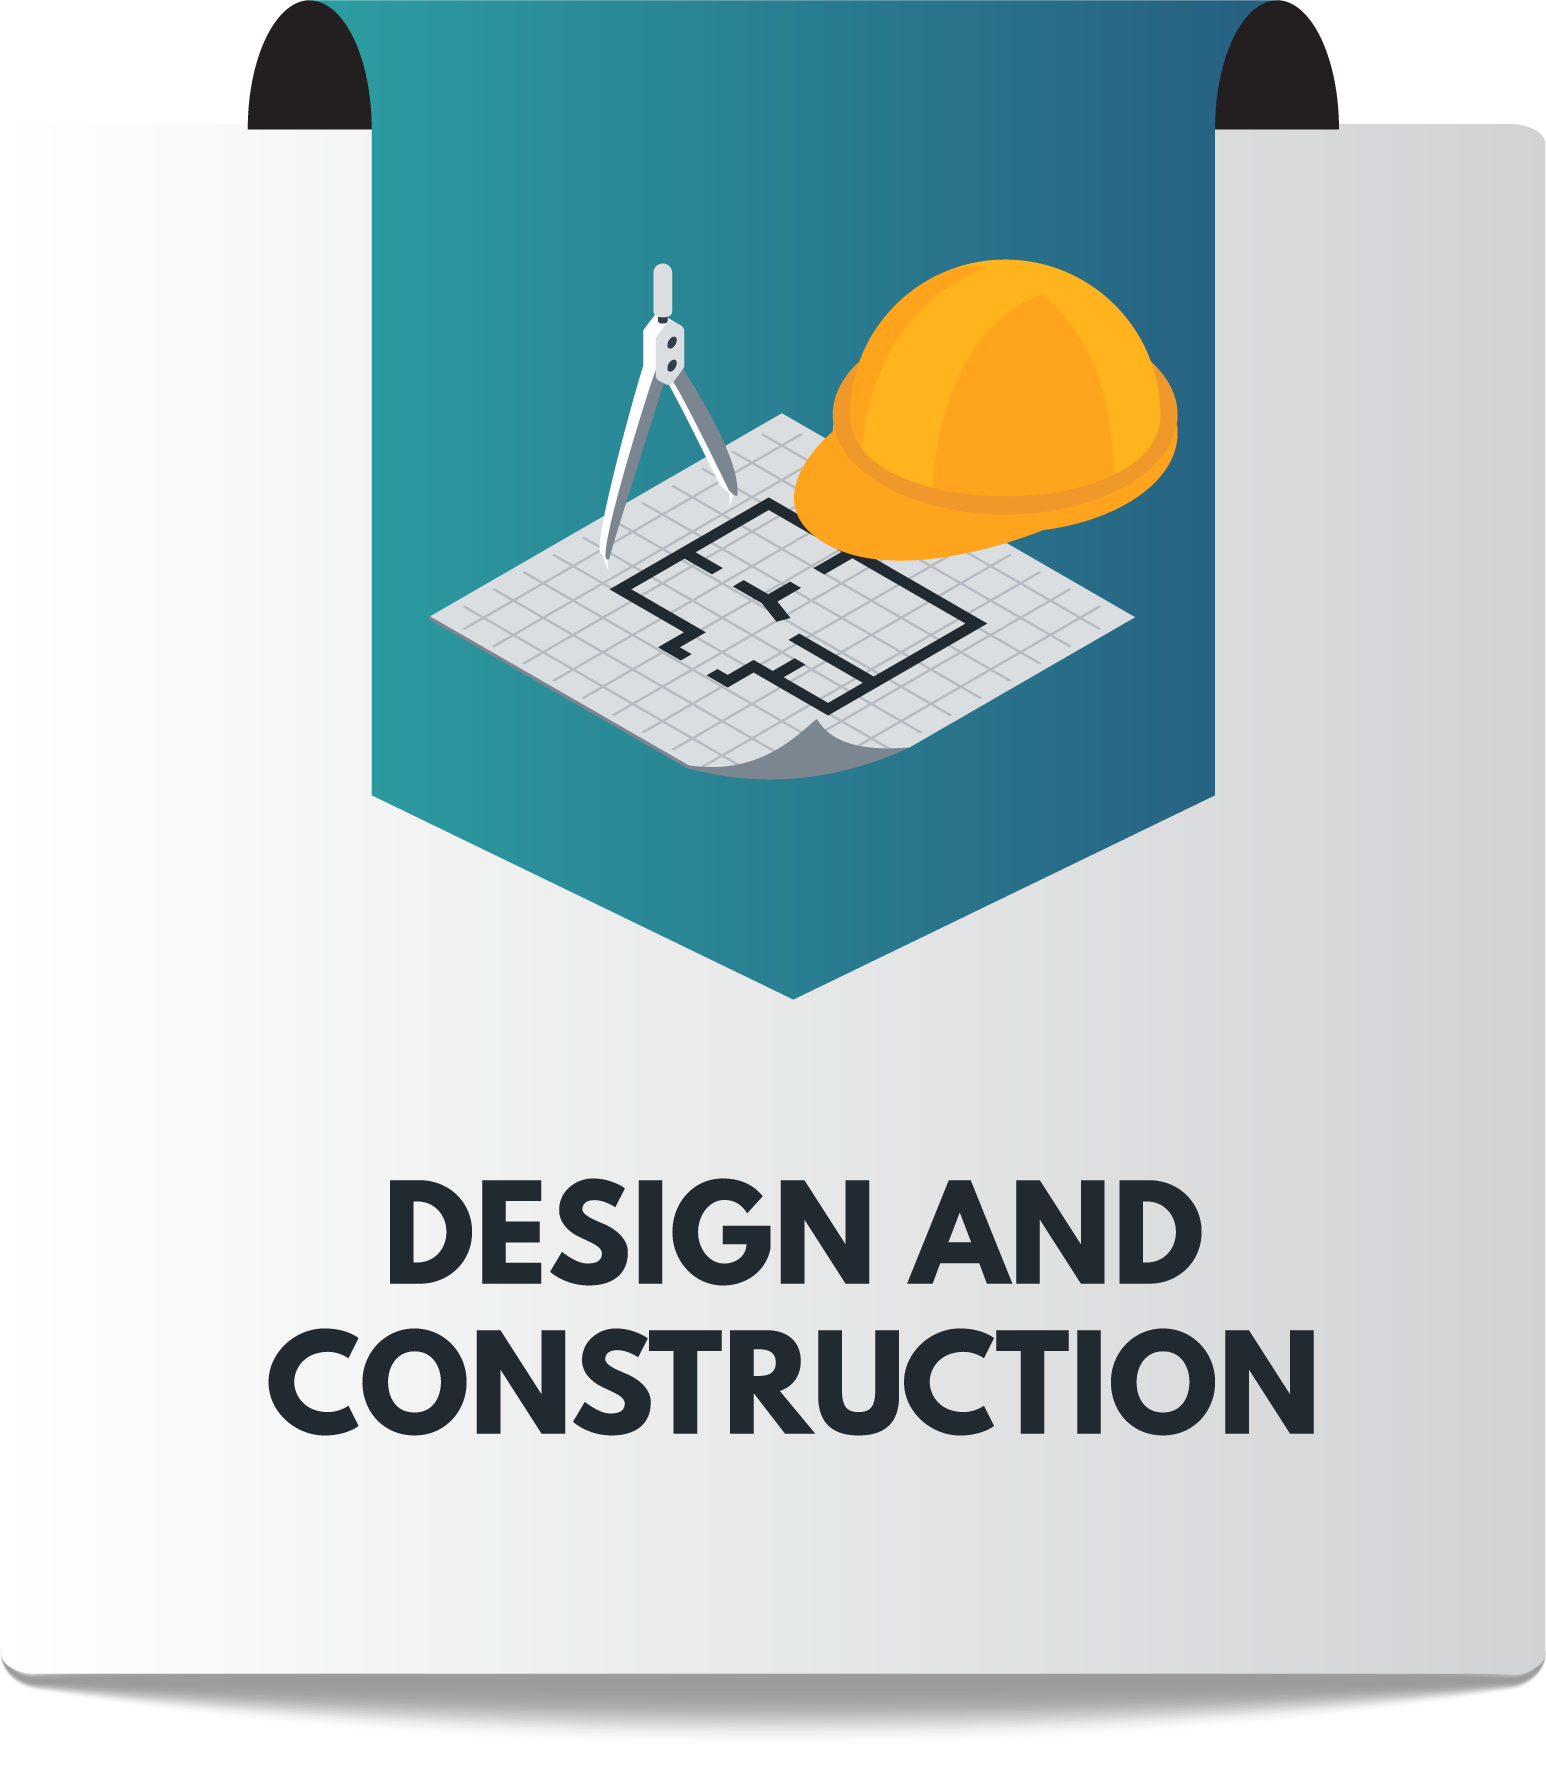 Click here to visit the Division of Construction website.